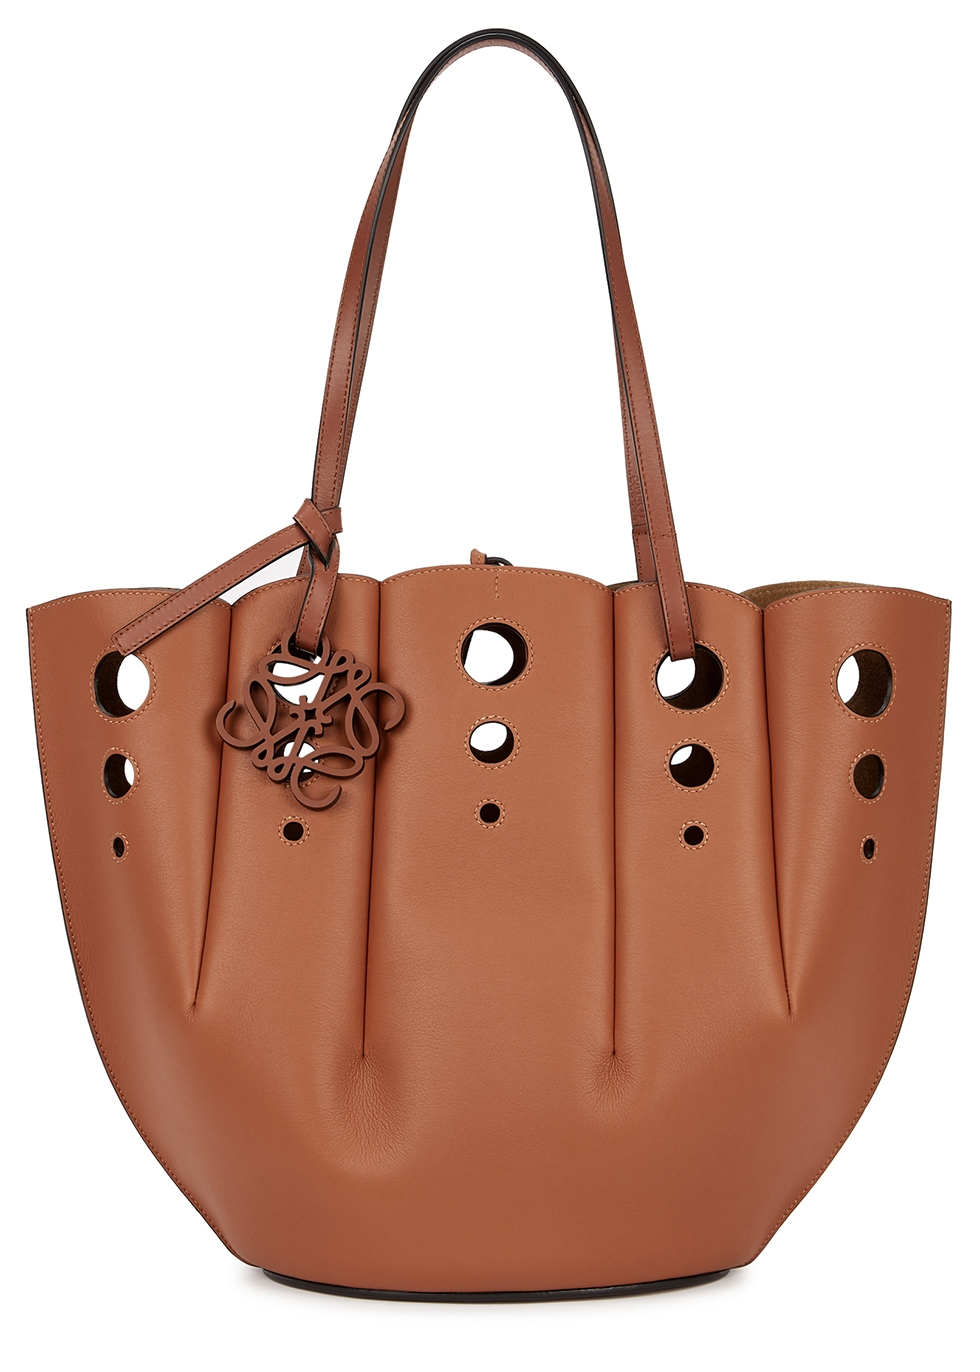 Shell brown perforated leather tote